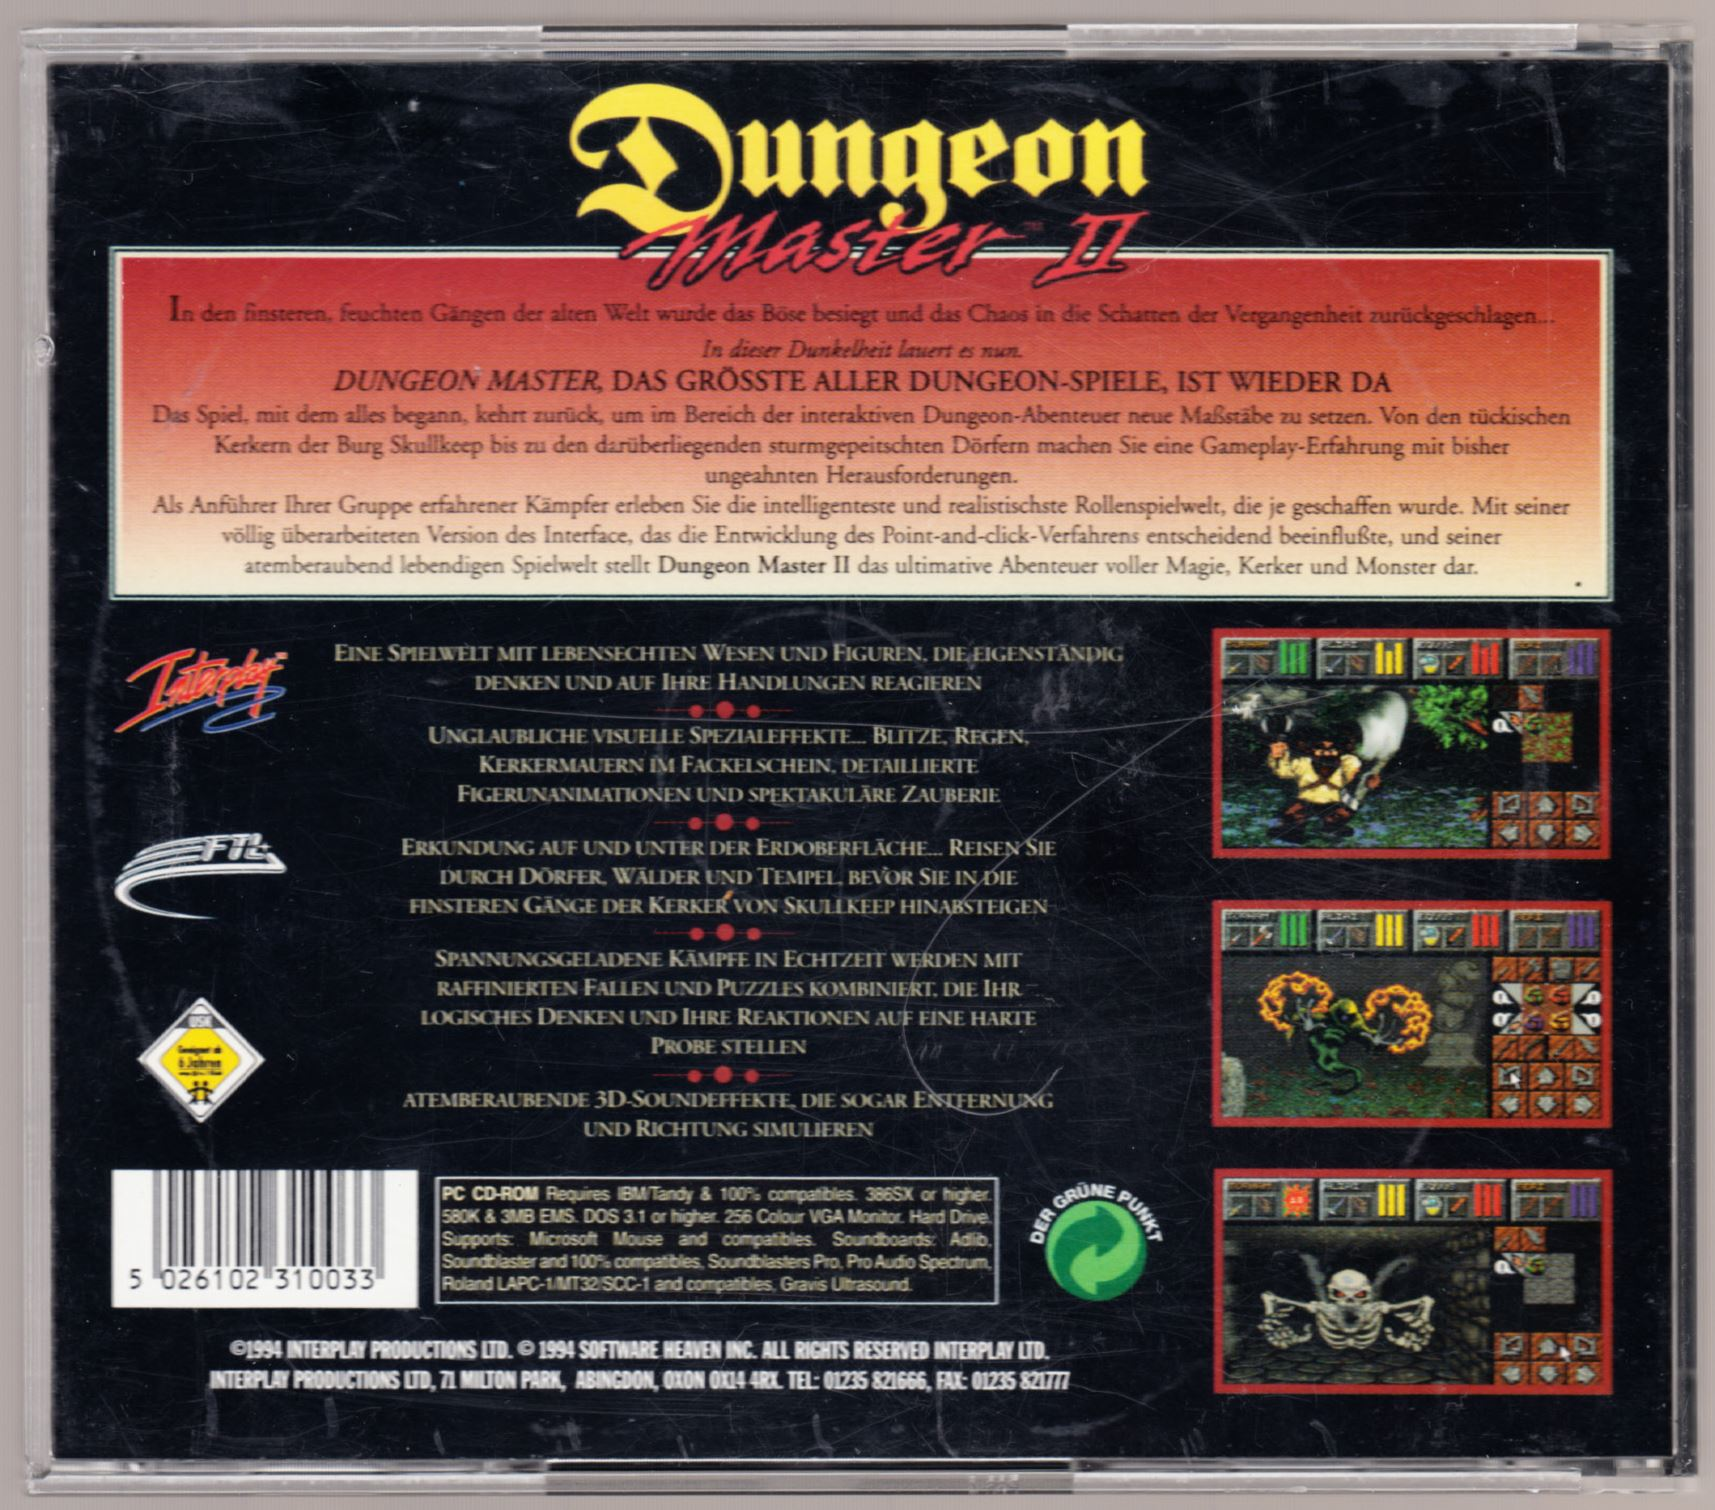 Game - Dungeon Master II - DE - PC - Jewel Case - Box - Back - Scan